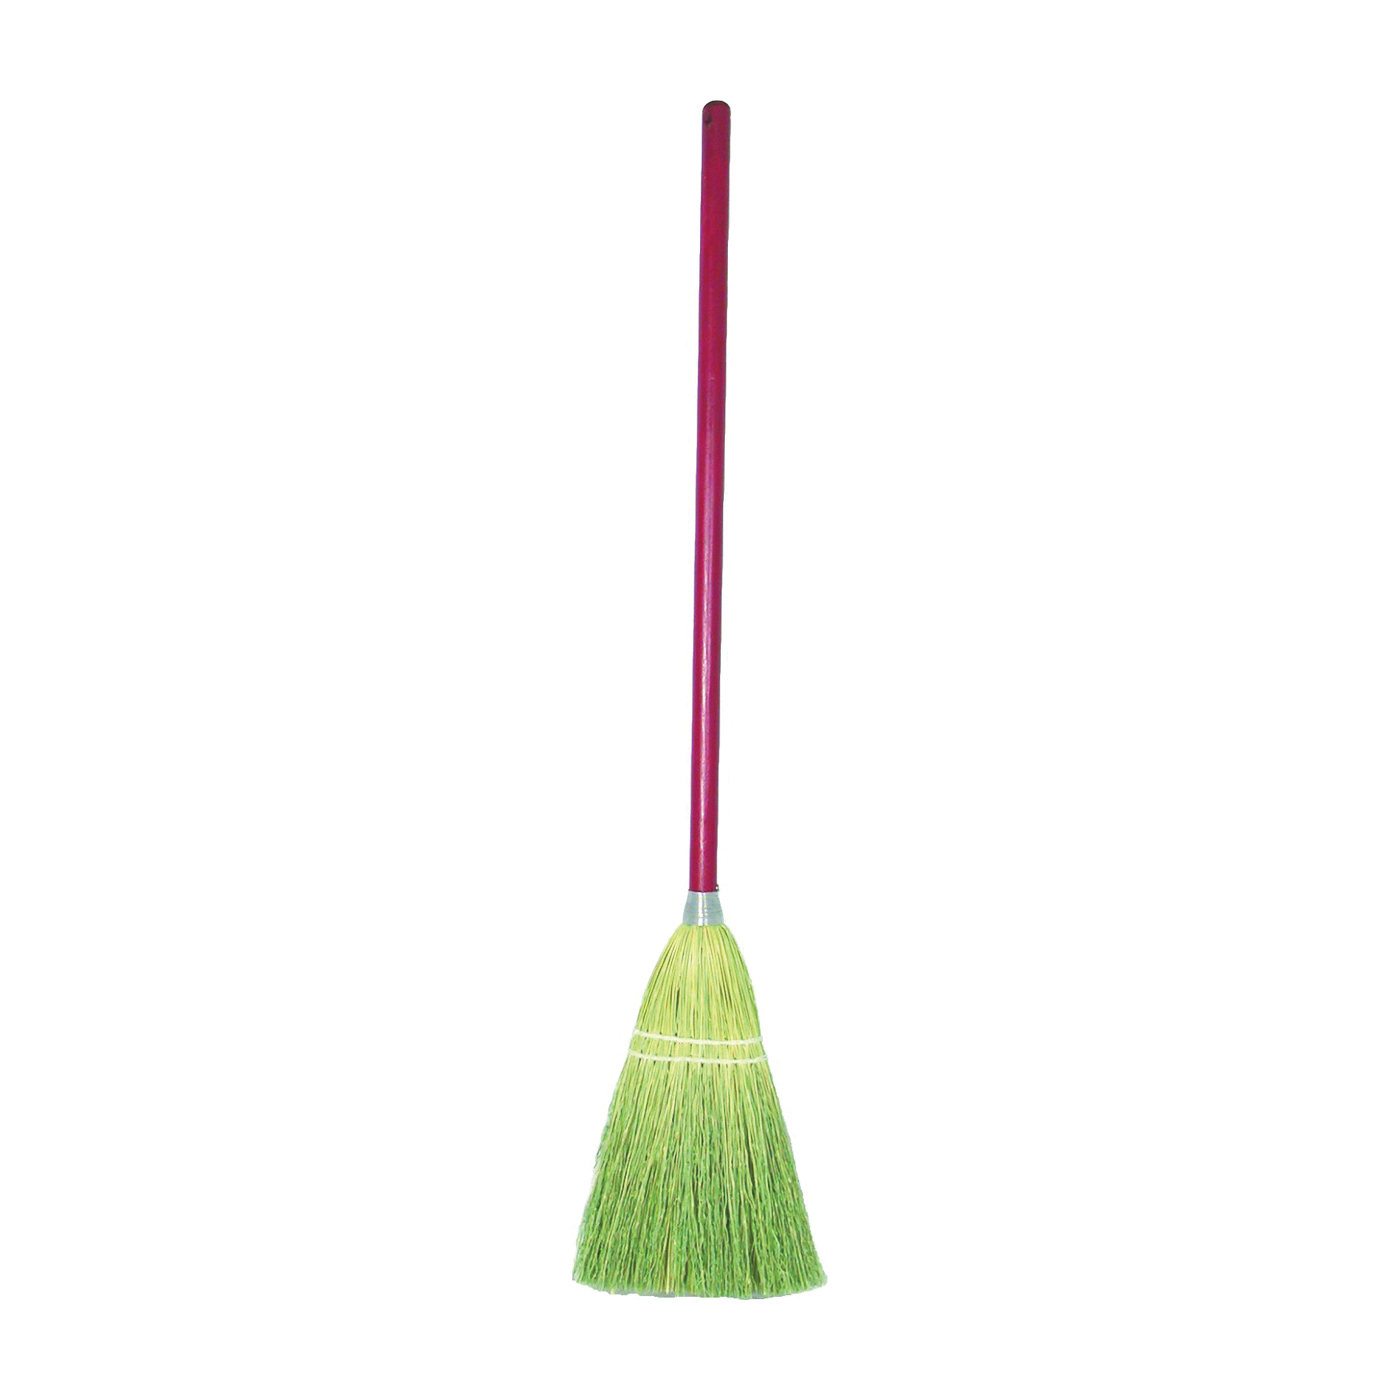 Picture of BIRDWELL 9301-12 Toy Broom, Corn/Sotol Fiber Bristle, Wood Handle